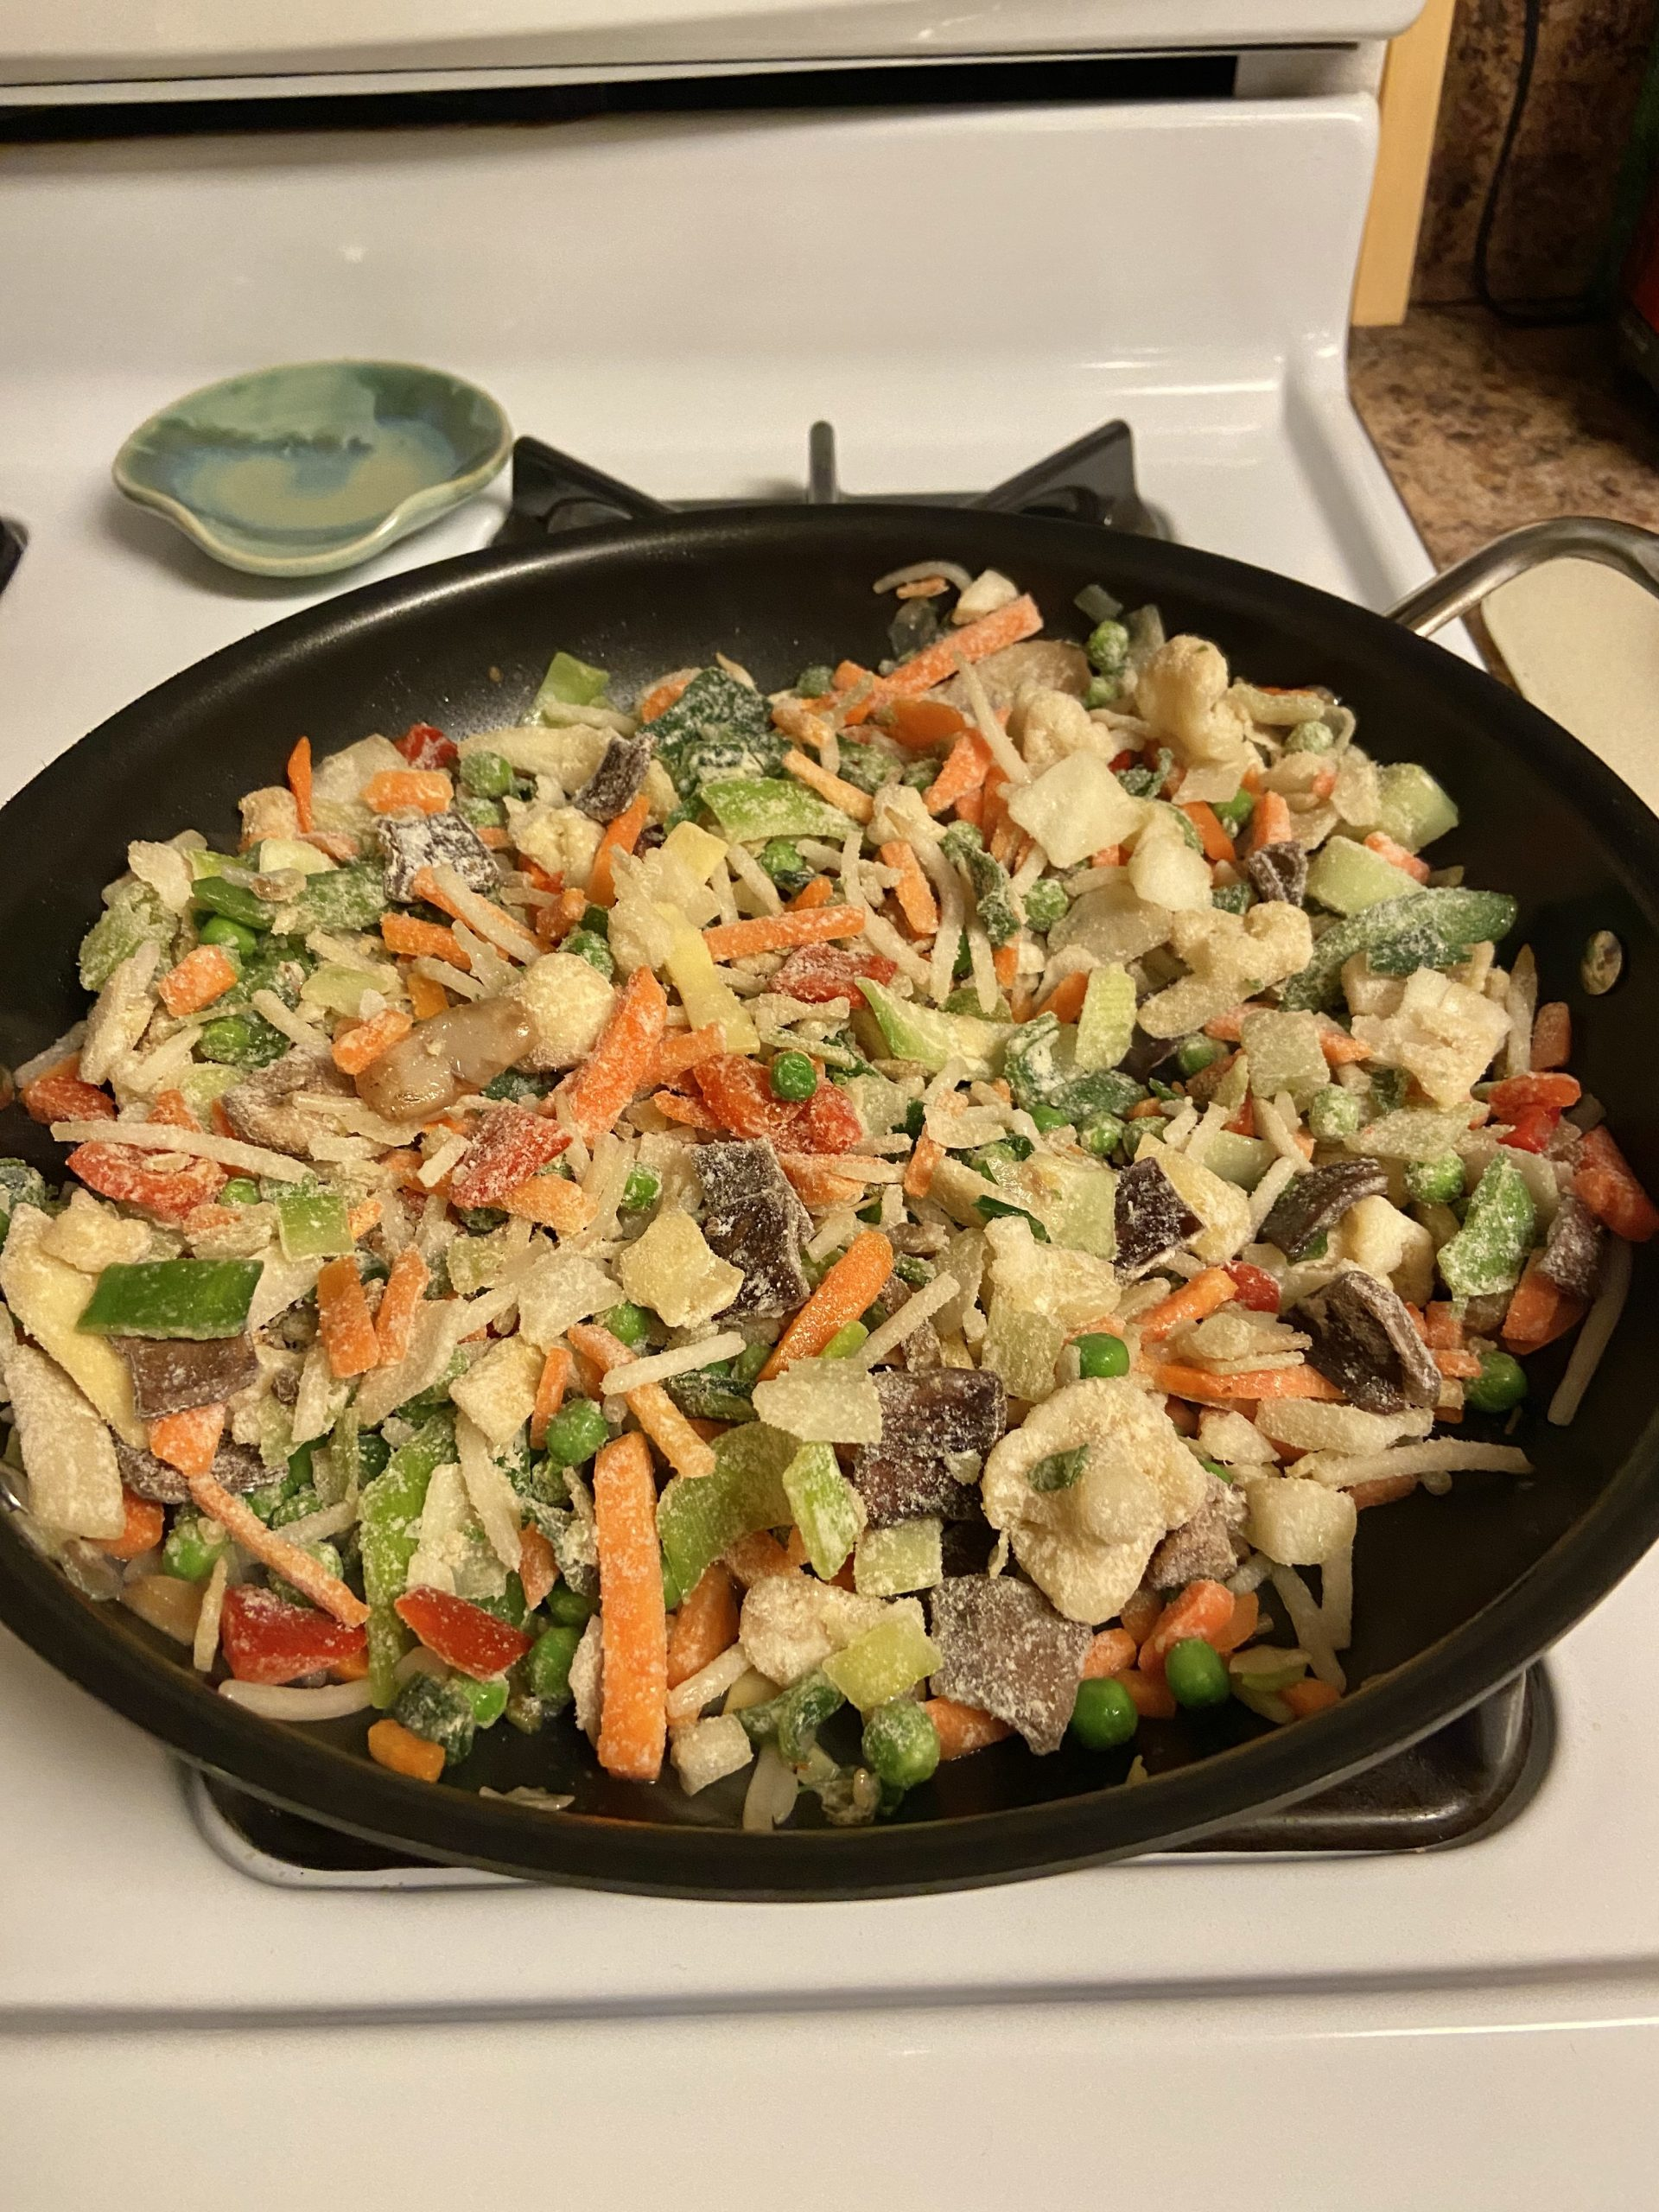 Asian Inspired Crispy Air Fried Tofu with stir fry vegetables